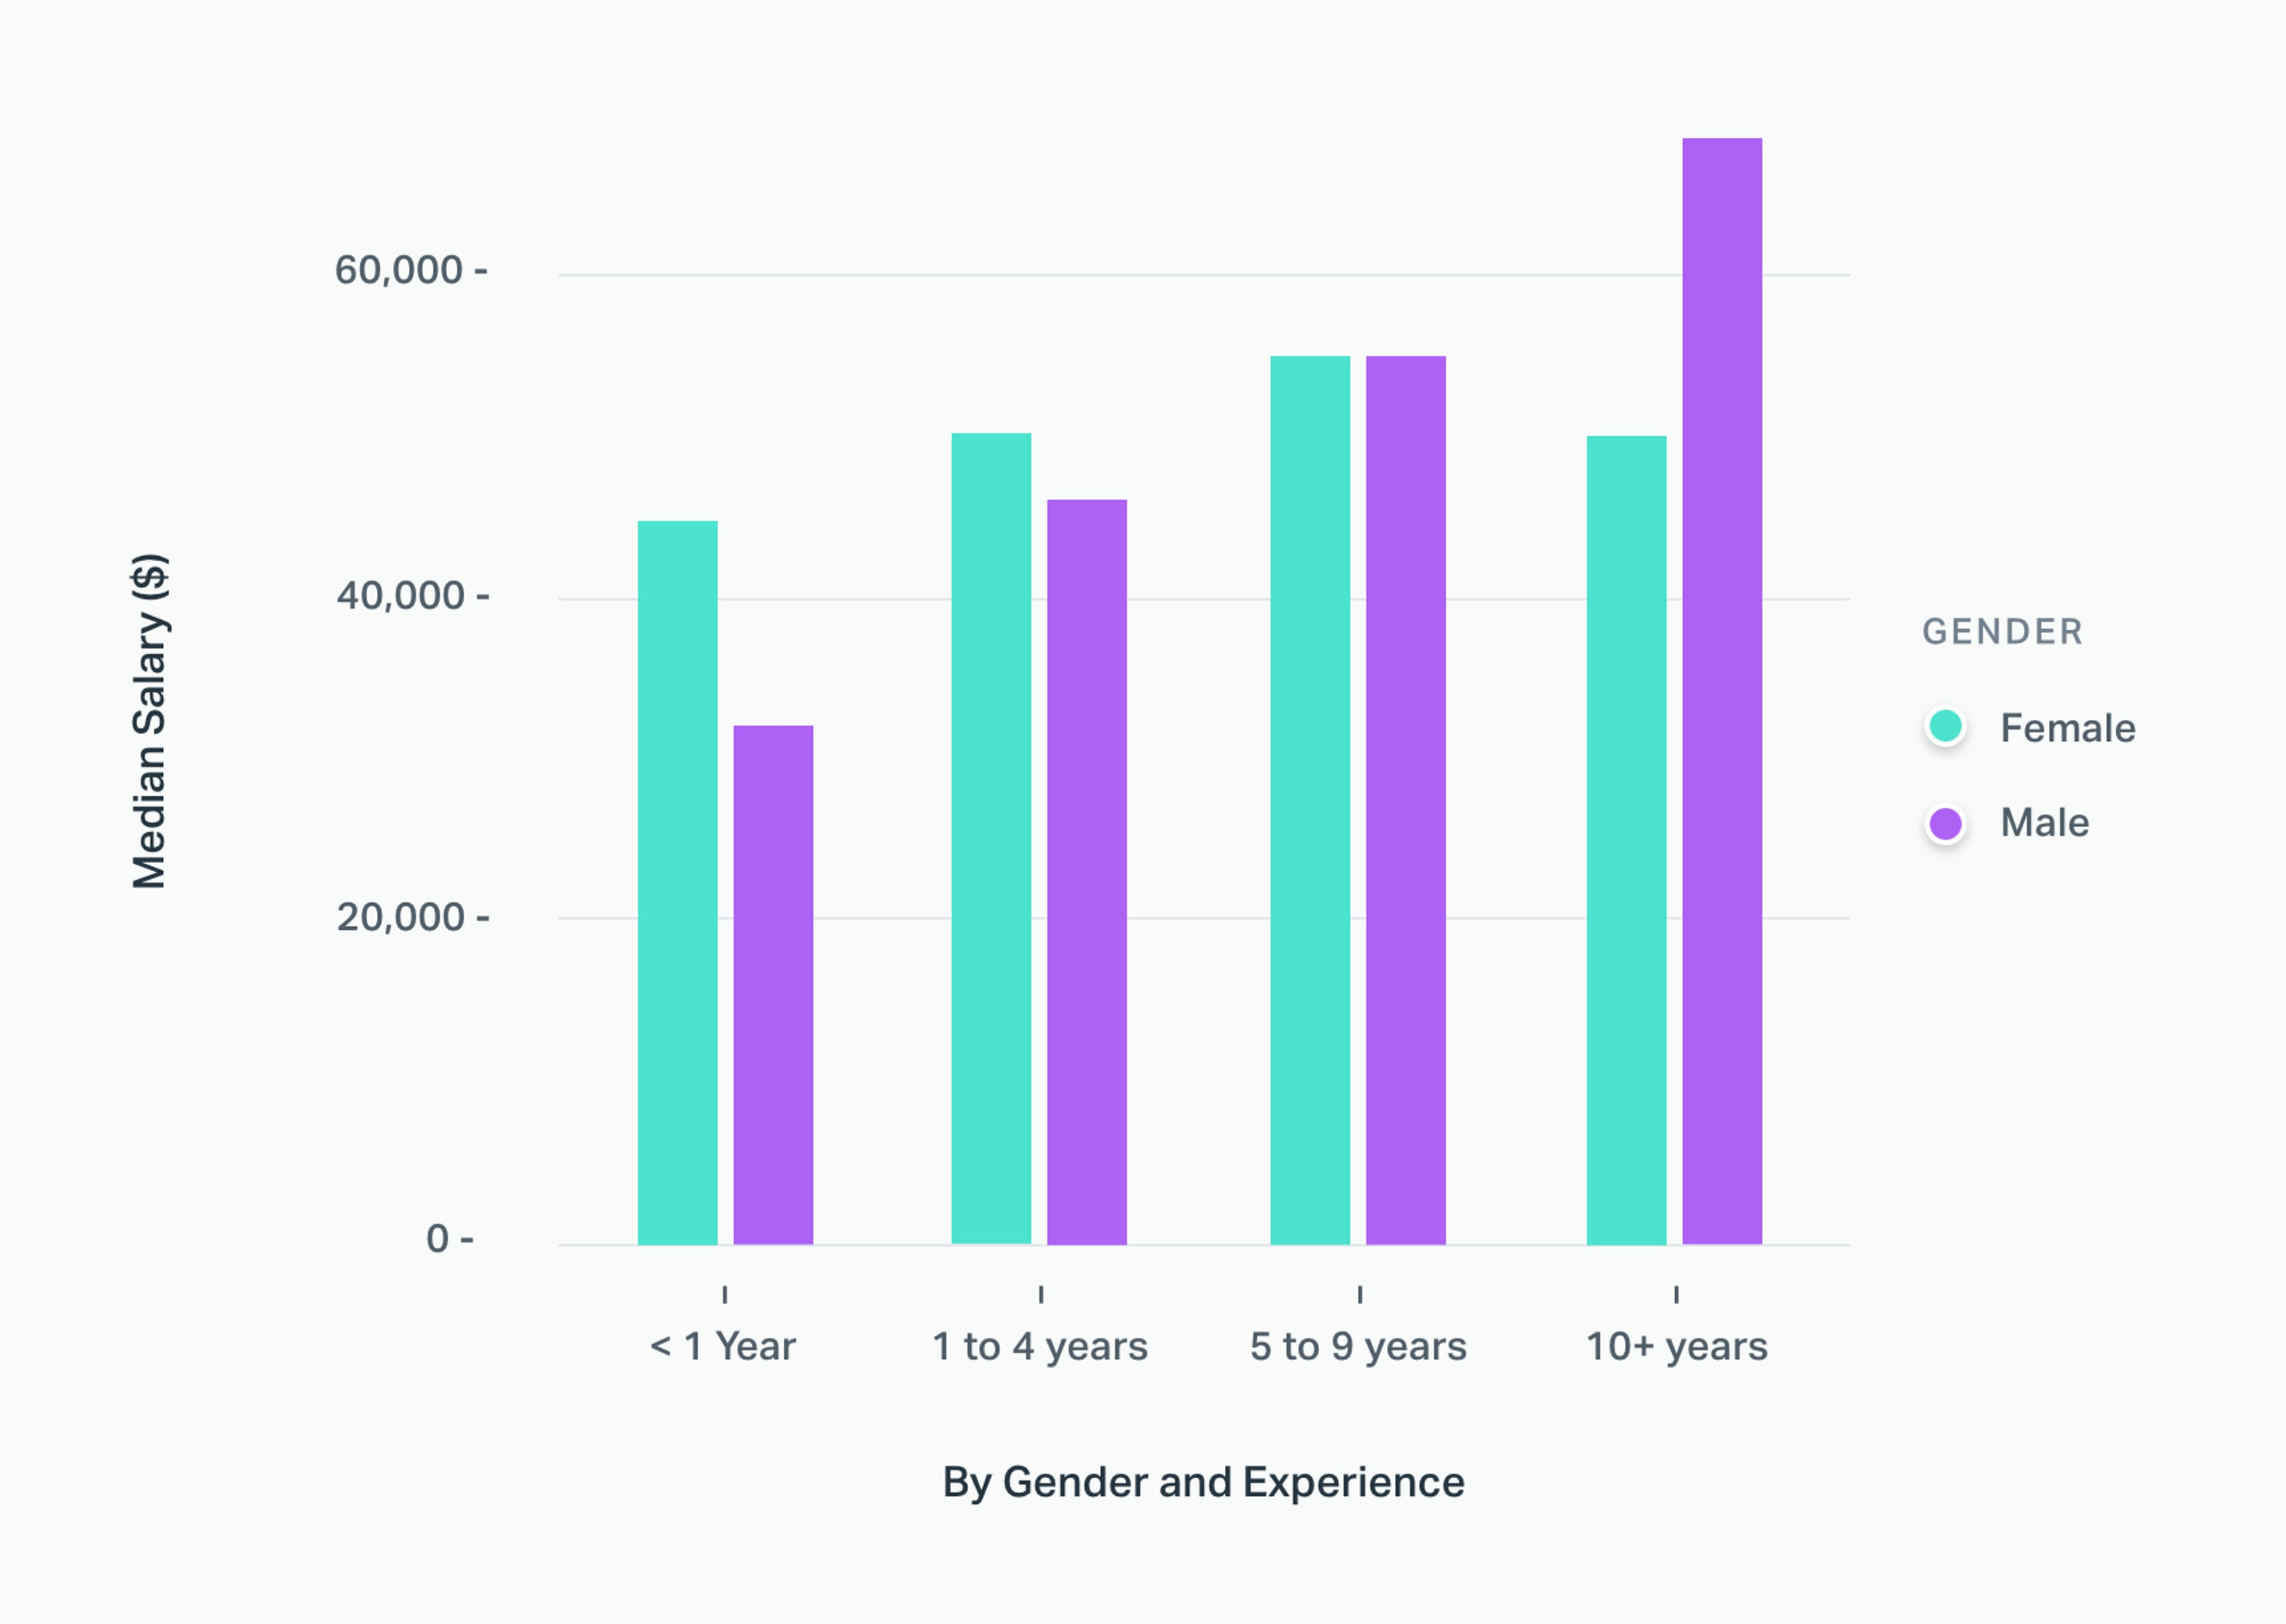 Salary by Gender and Experience